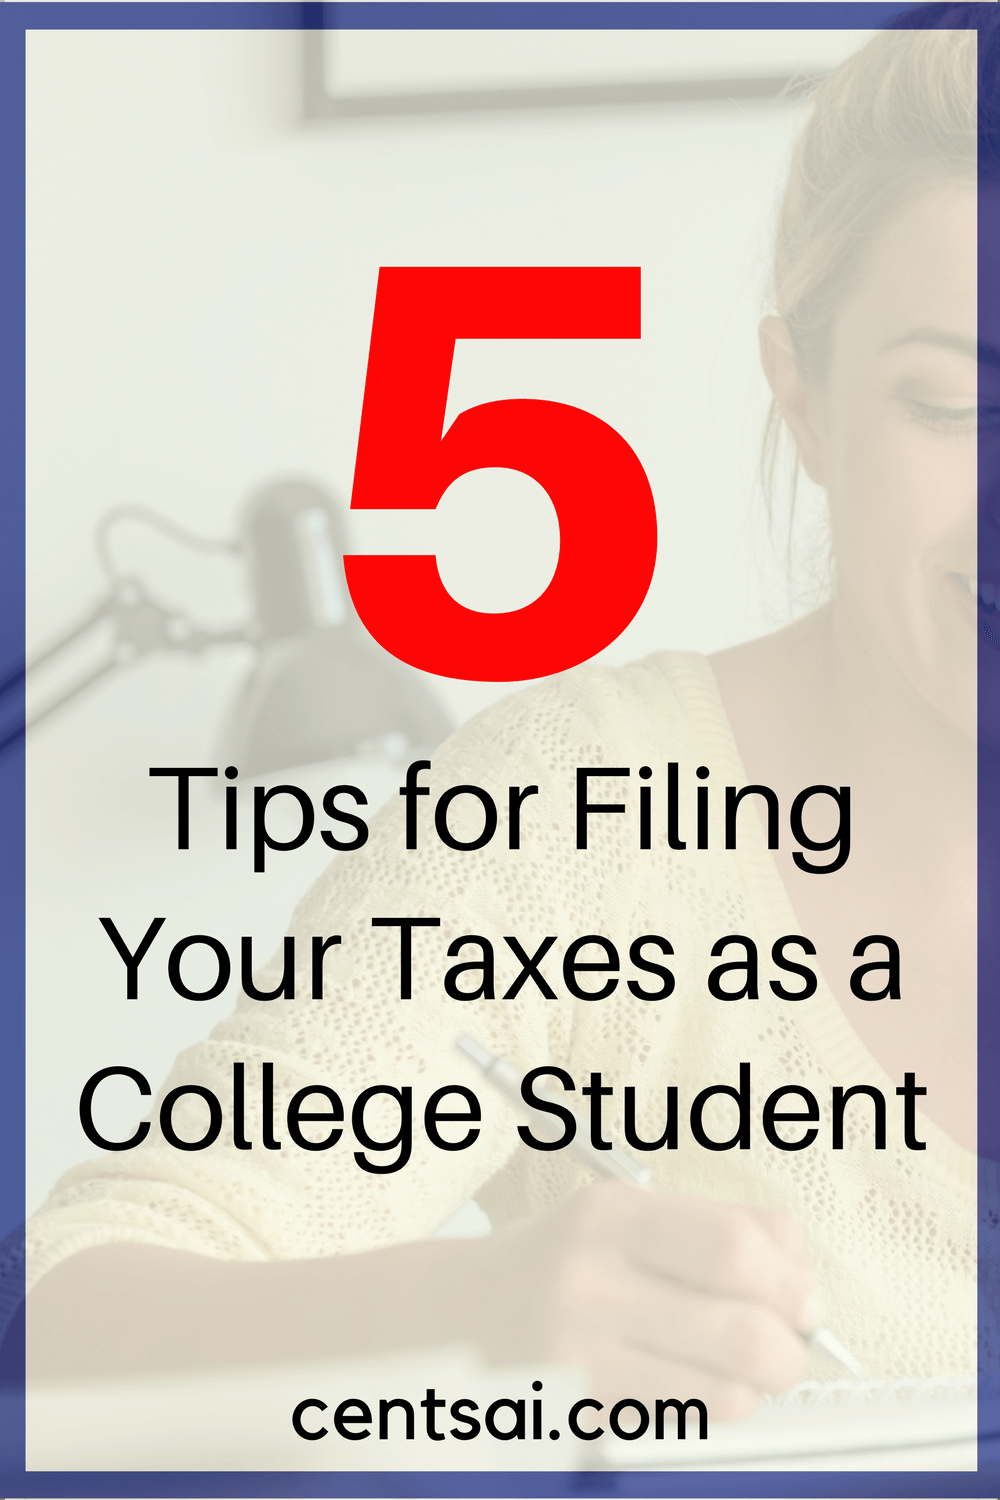 5 Tips for Filing Your Taxes as a College Student. Time to sit for yet another test – tax filing! Make sure you get it right the first time.